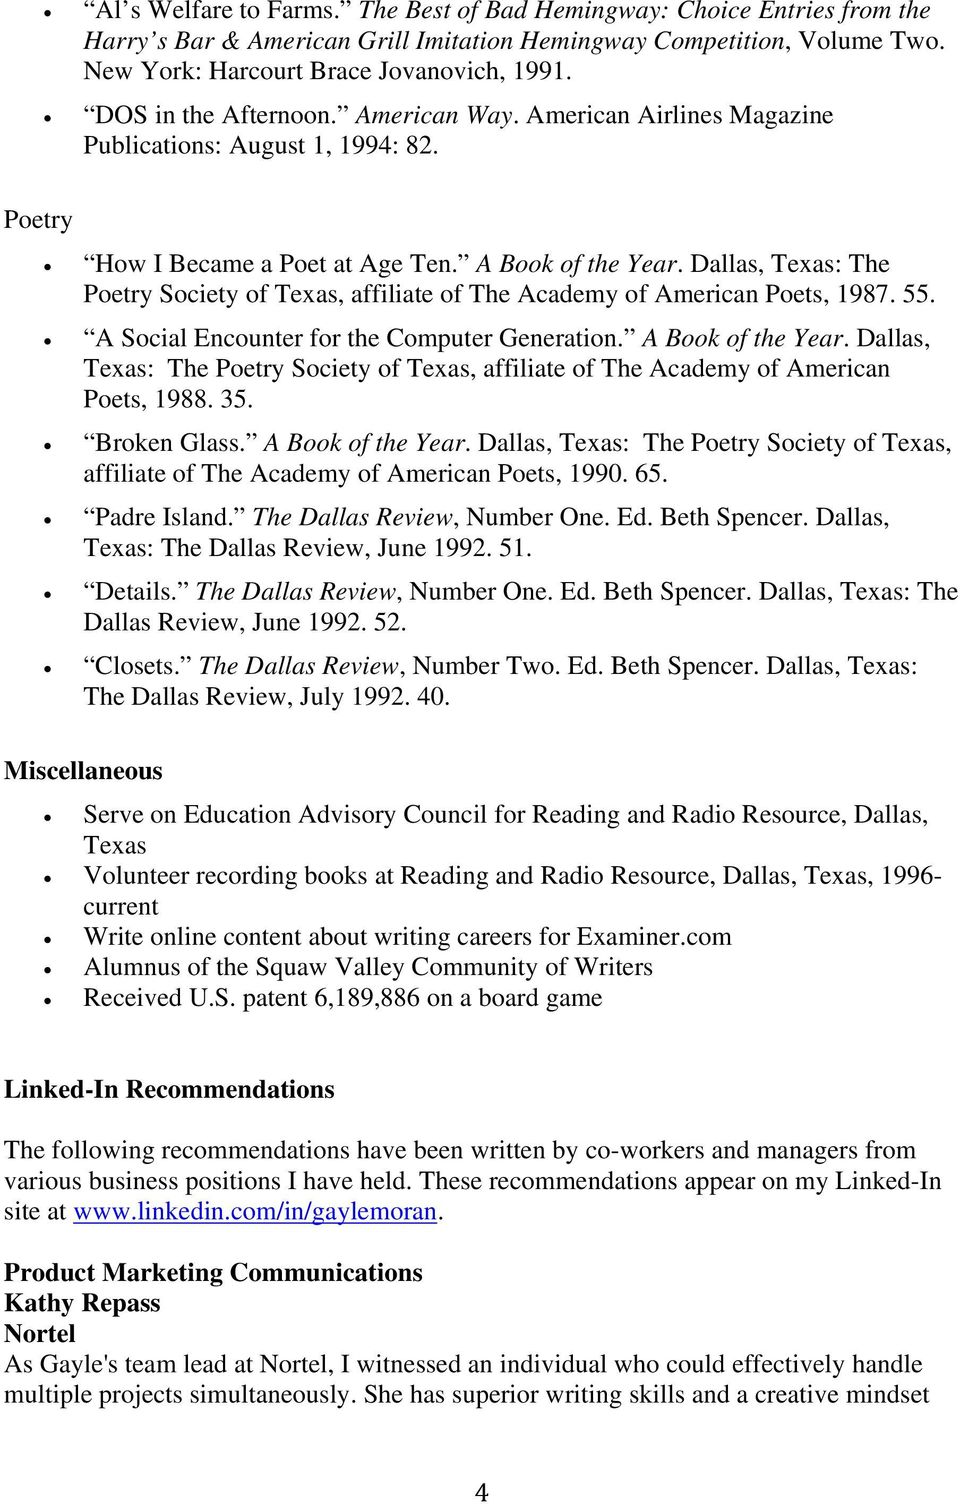 Dallas, Texas: The Poetry Society of Texas, affiliate of The Academy of American Poets, 1987. 55. A Social Encounter for the Computer Generation. A Book of the Year.